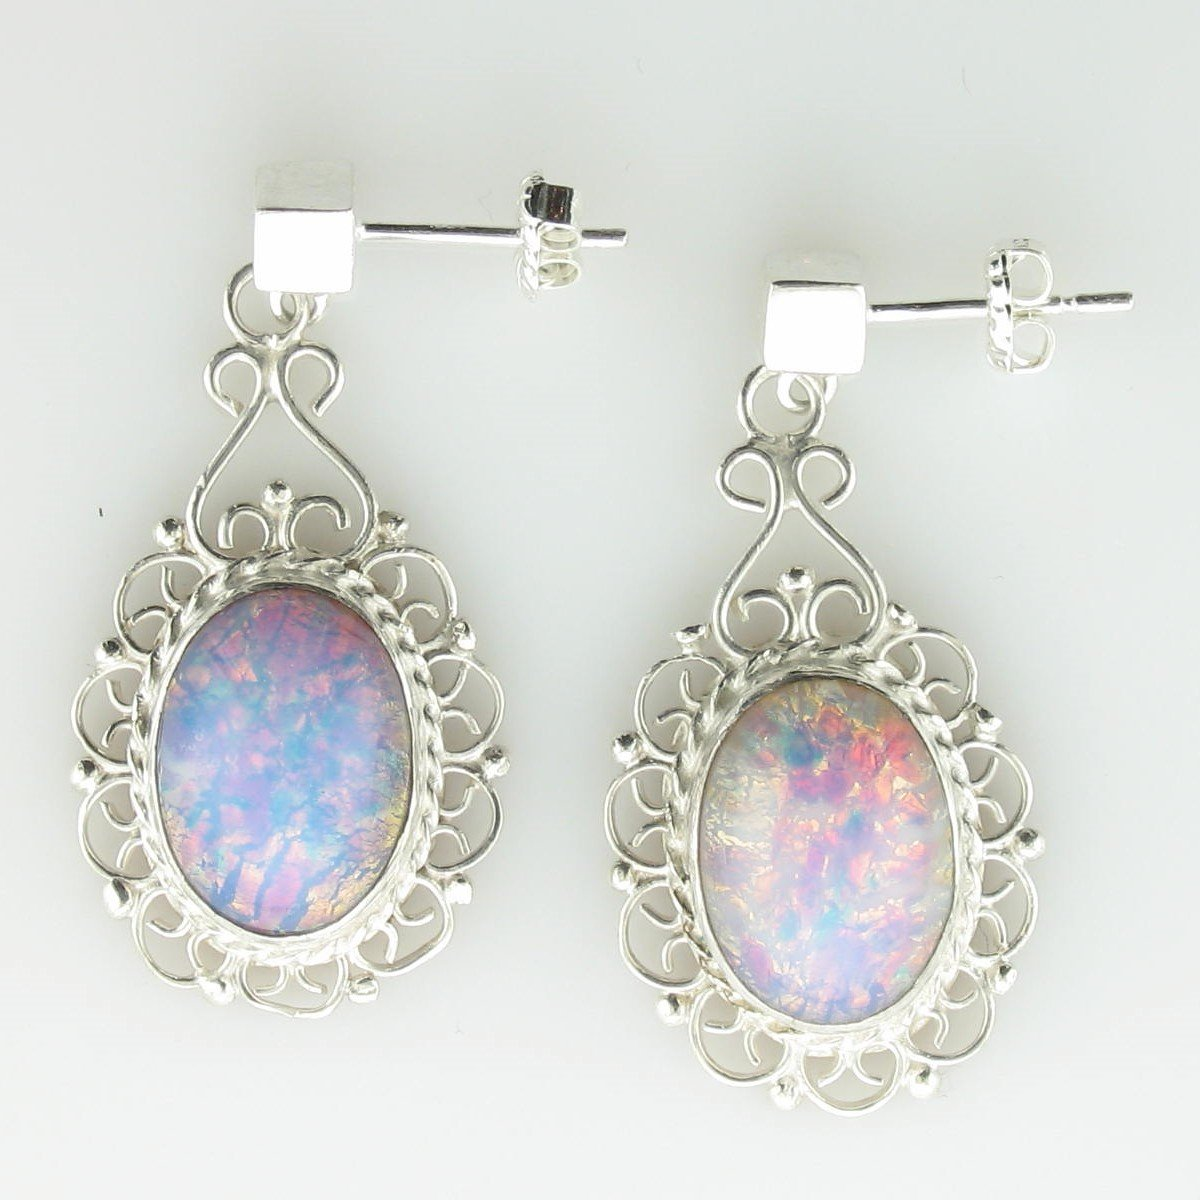 Iridescent Glass Dangle Earrings set in Sterling Silver